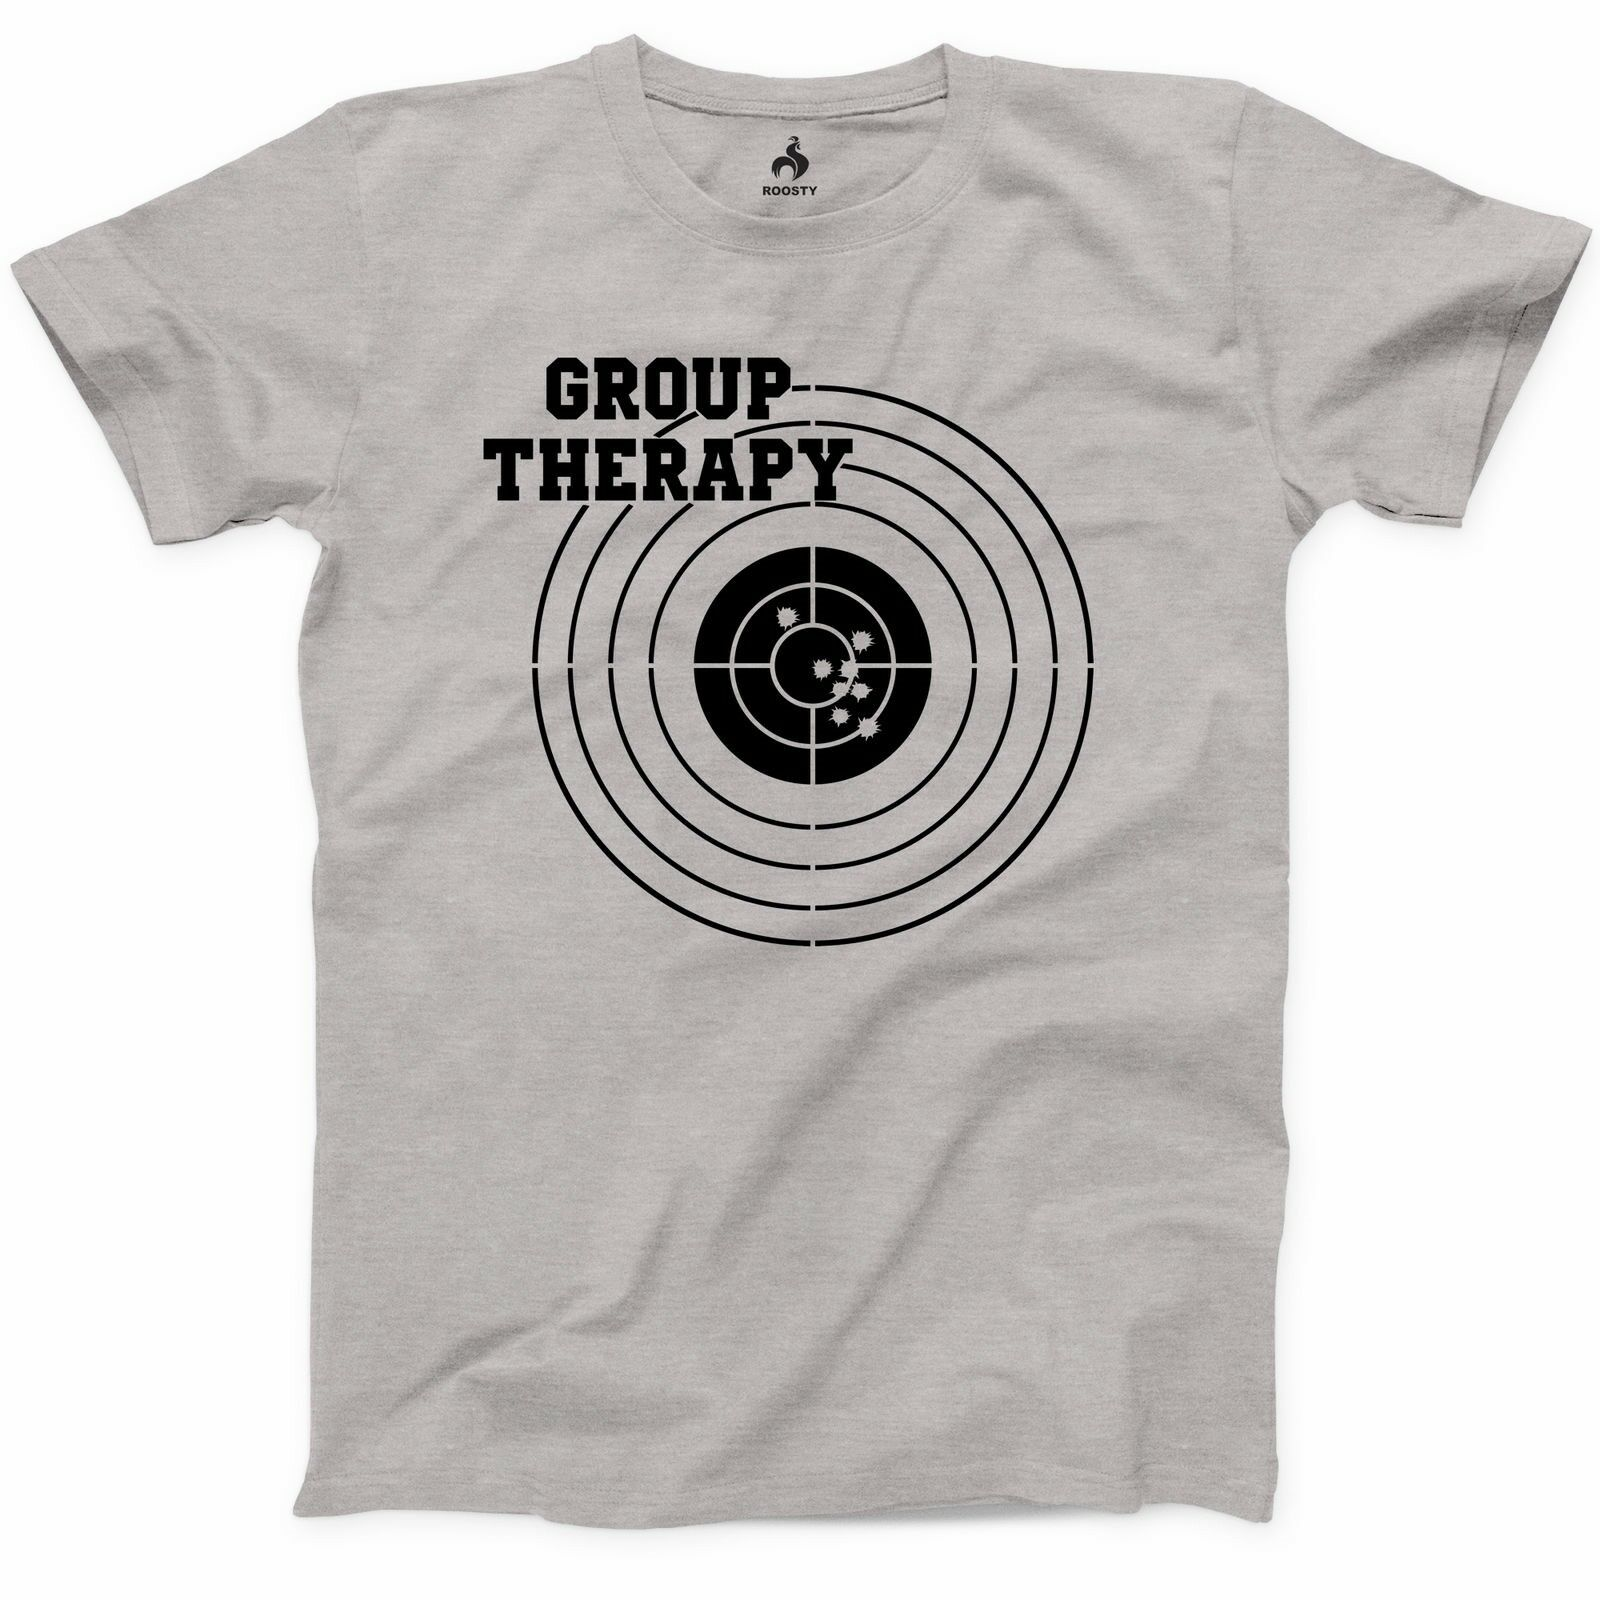 Group Therapy Shooting T Shirt Funny Gun Laws Rights American 2Nd Amendment New Men Fashion Brand Fitness Slim Fit T Shirts